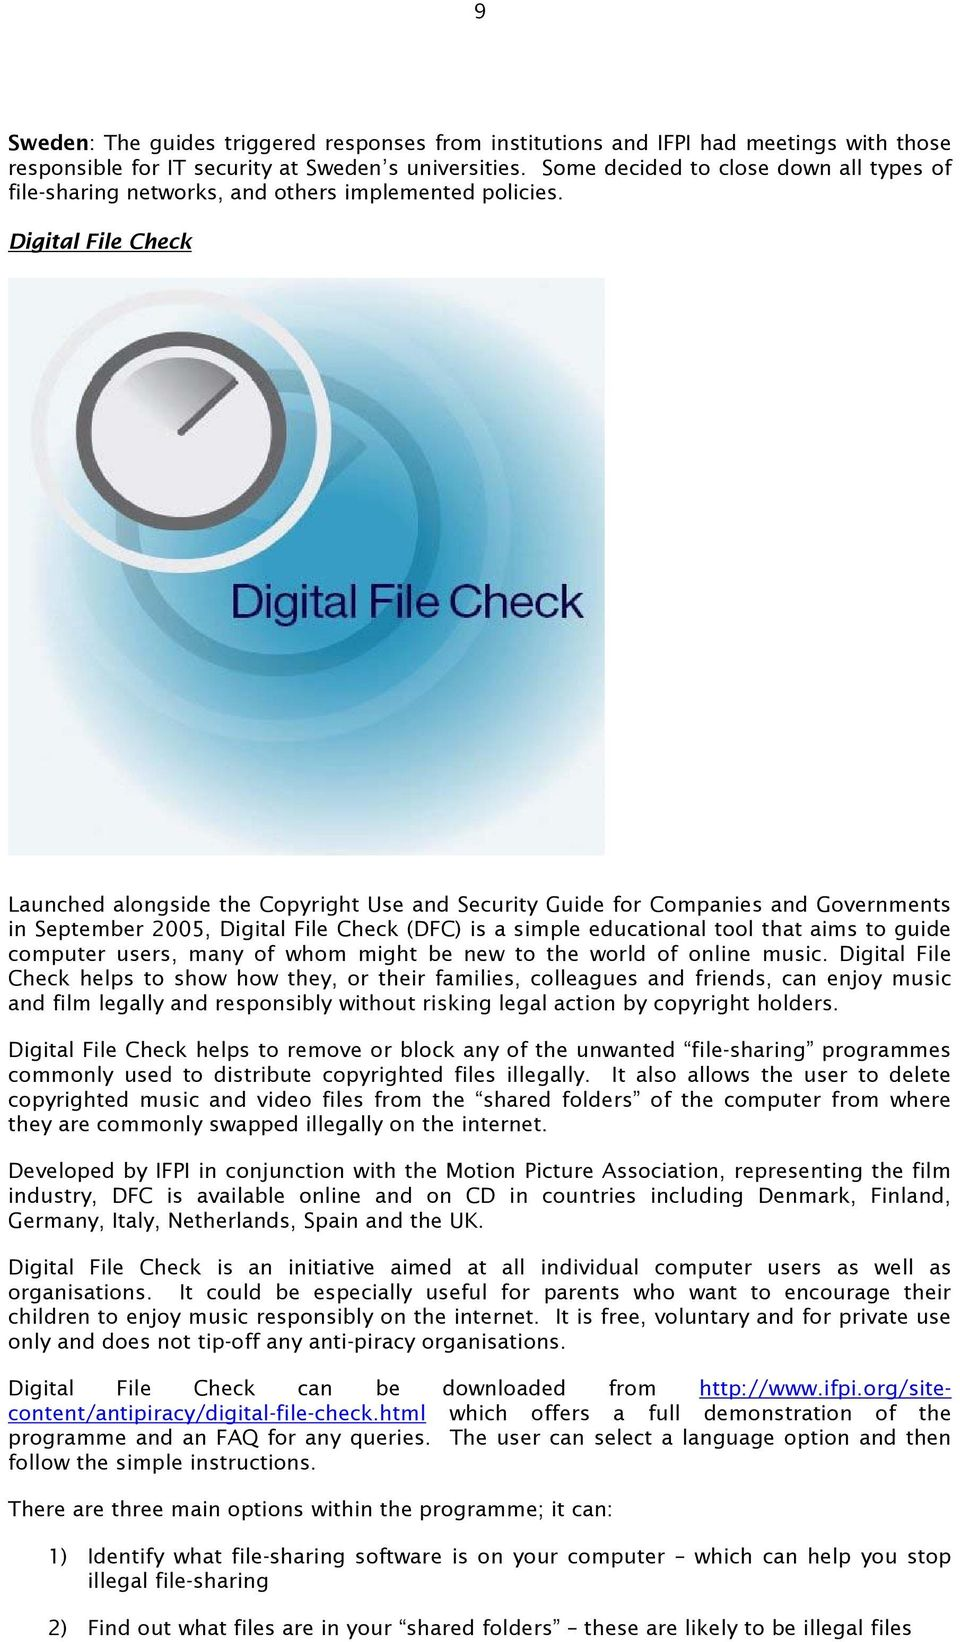 Digital File Check Launched alongside the Copyright Use and Security Guide for Companies and Governments in September 2005, Digital File Check (DFC) is a simple educational tool that aims to guide